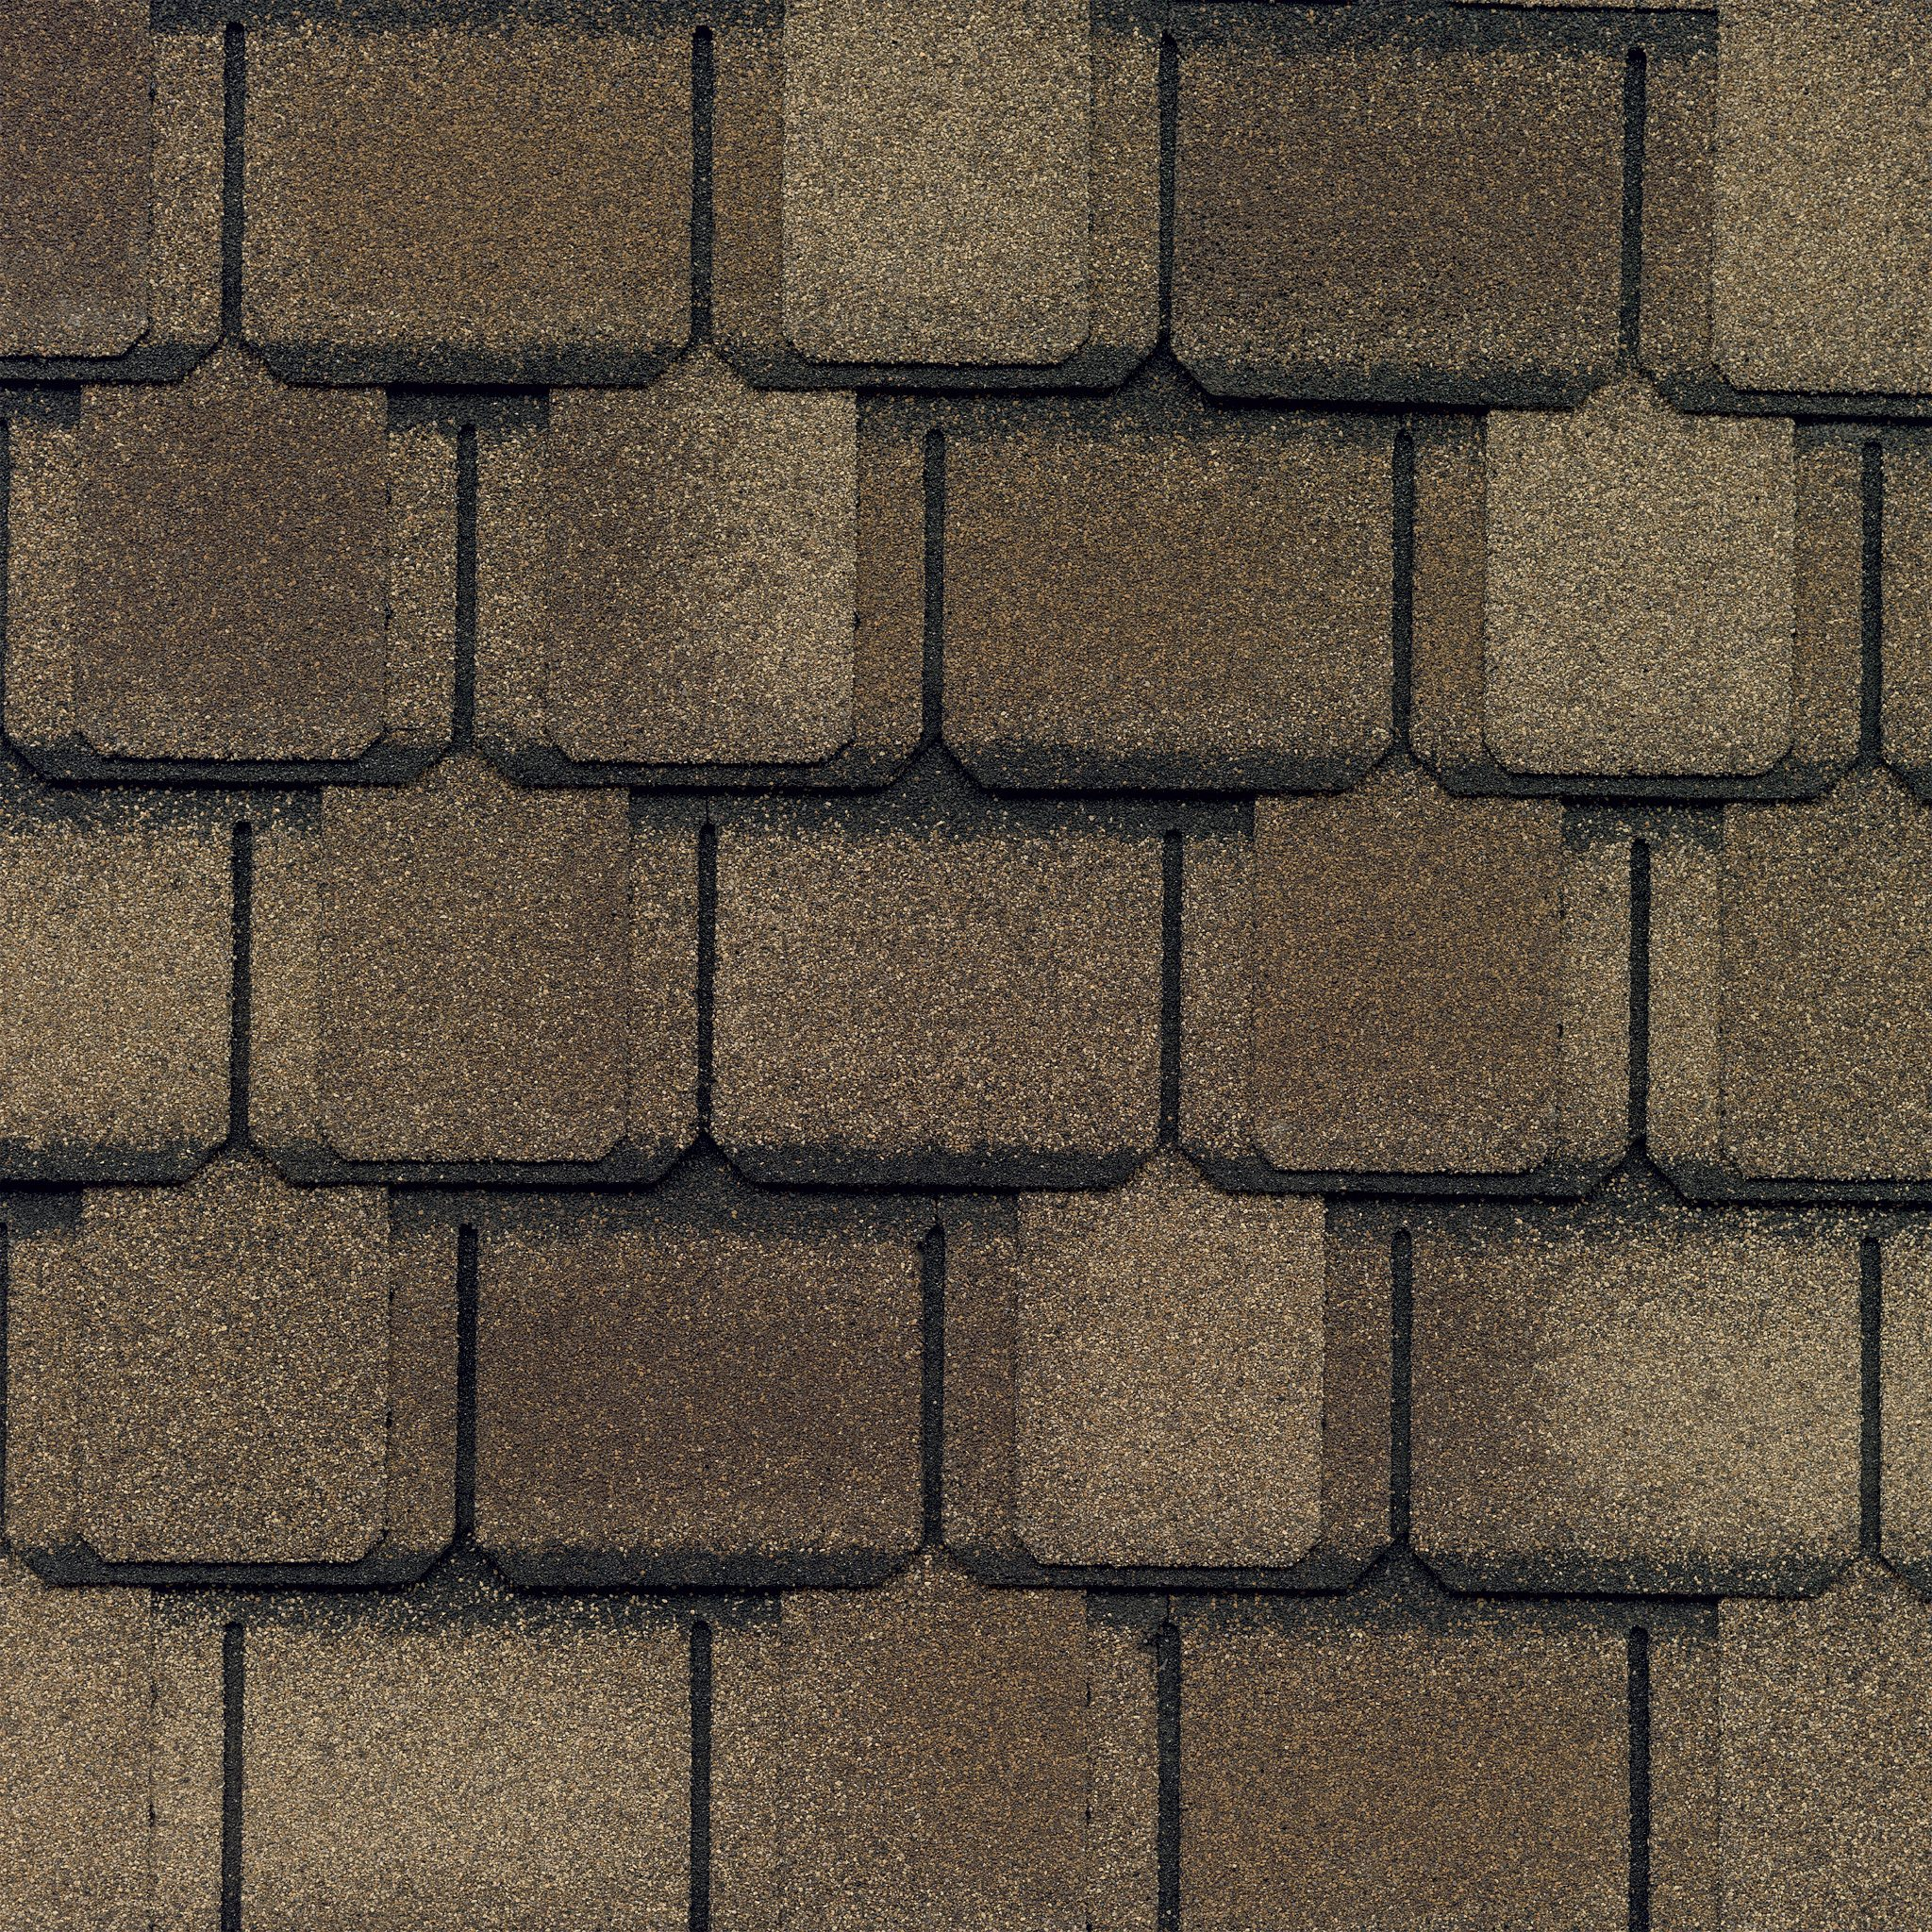 Close-up photo of GAF's Camelot II Shakewood shingle swatch